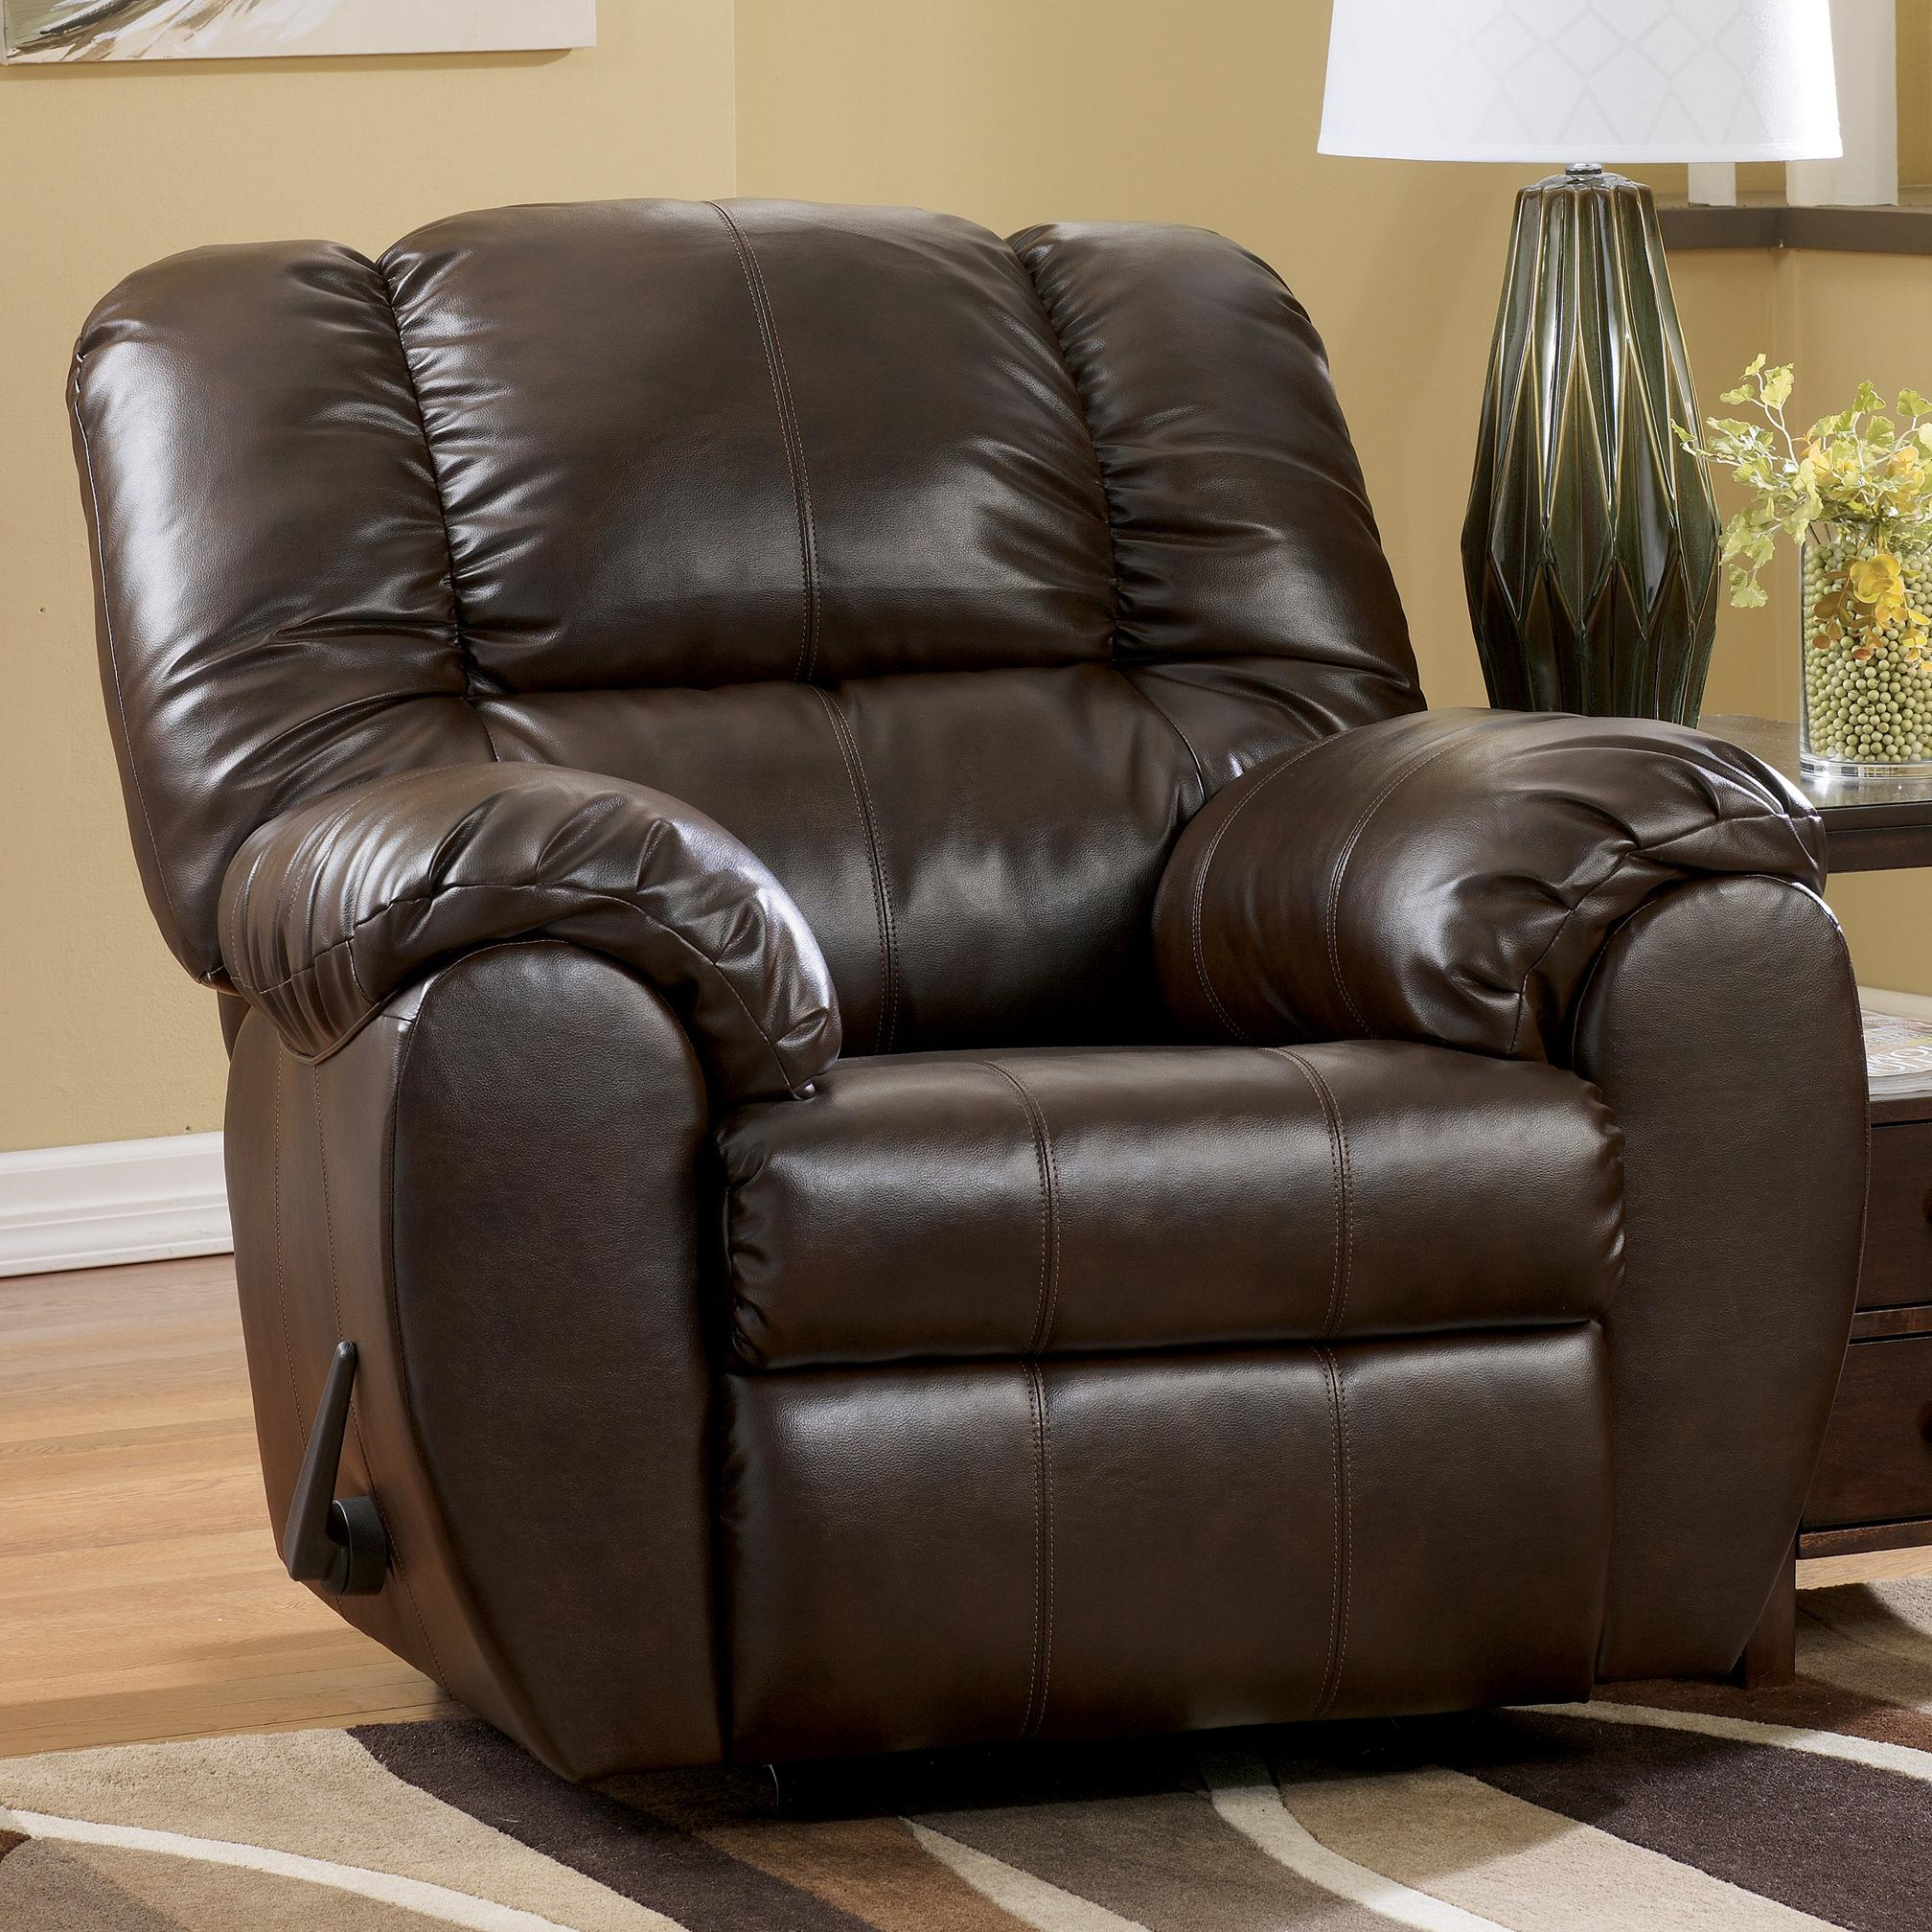 Ordinaire Dylan DuraBlend   Espresso Bonded Leather Match Rocker Recliner By  Signature Design By Ashley